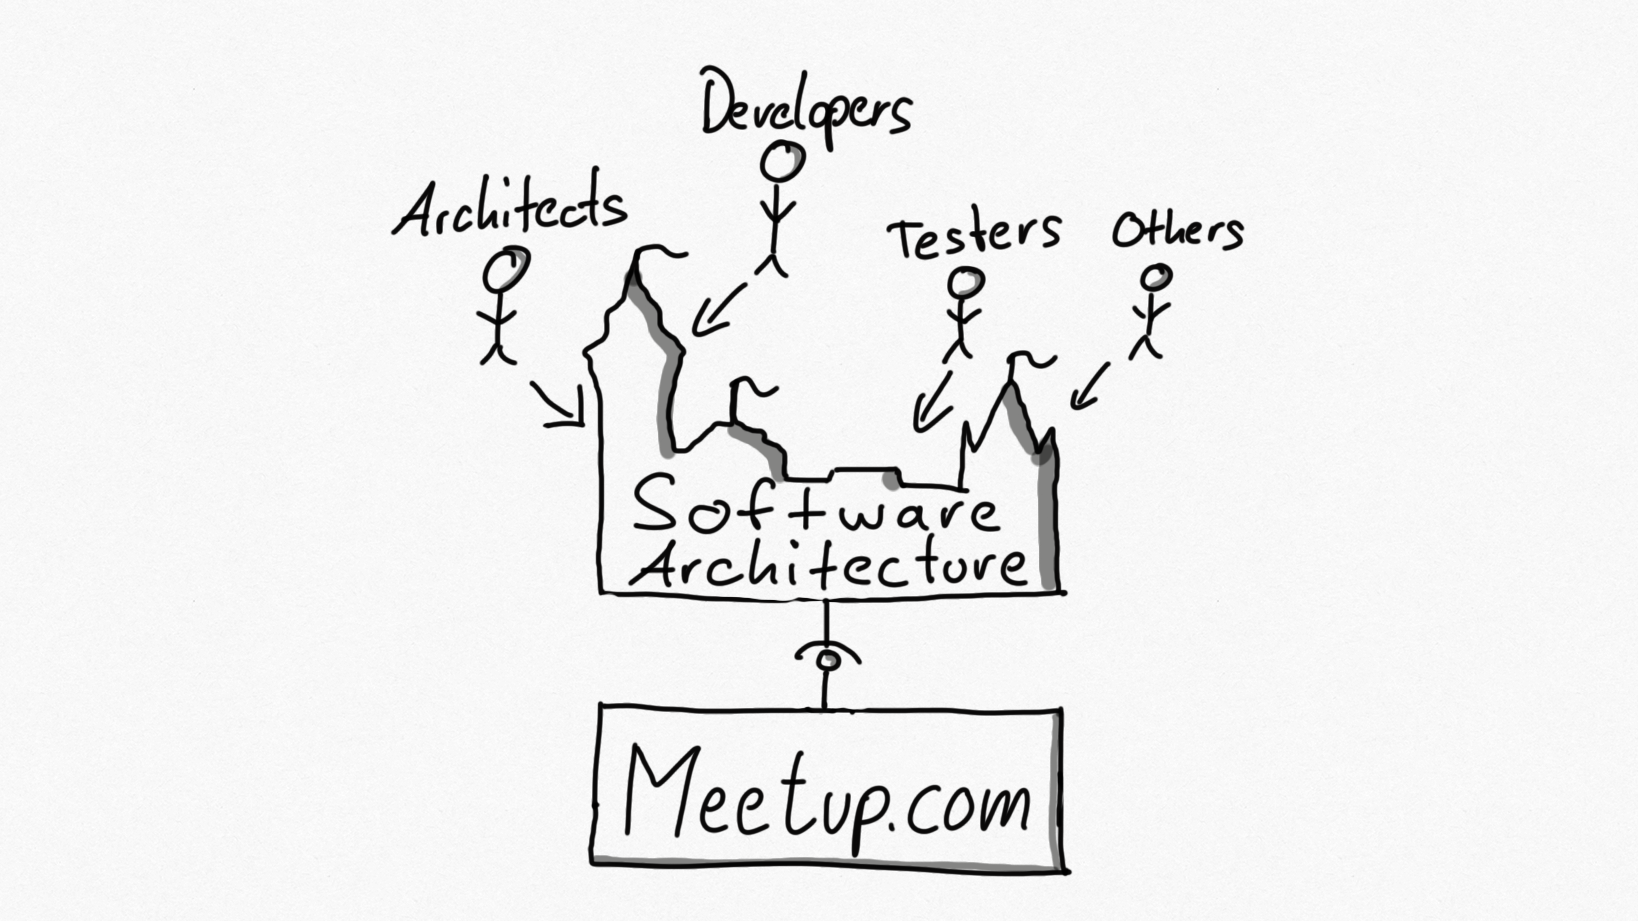 Software Architecture Meetup Nürnberg